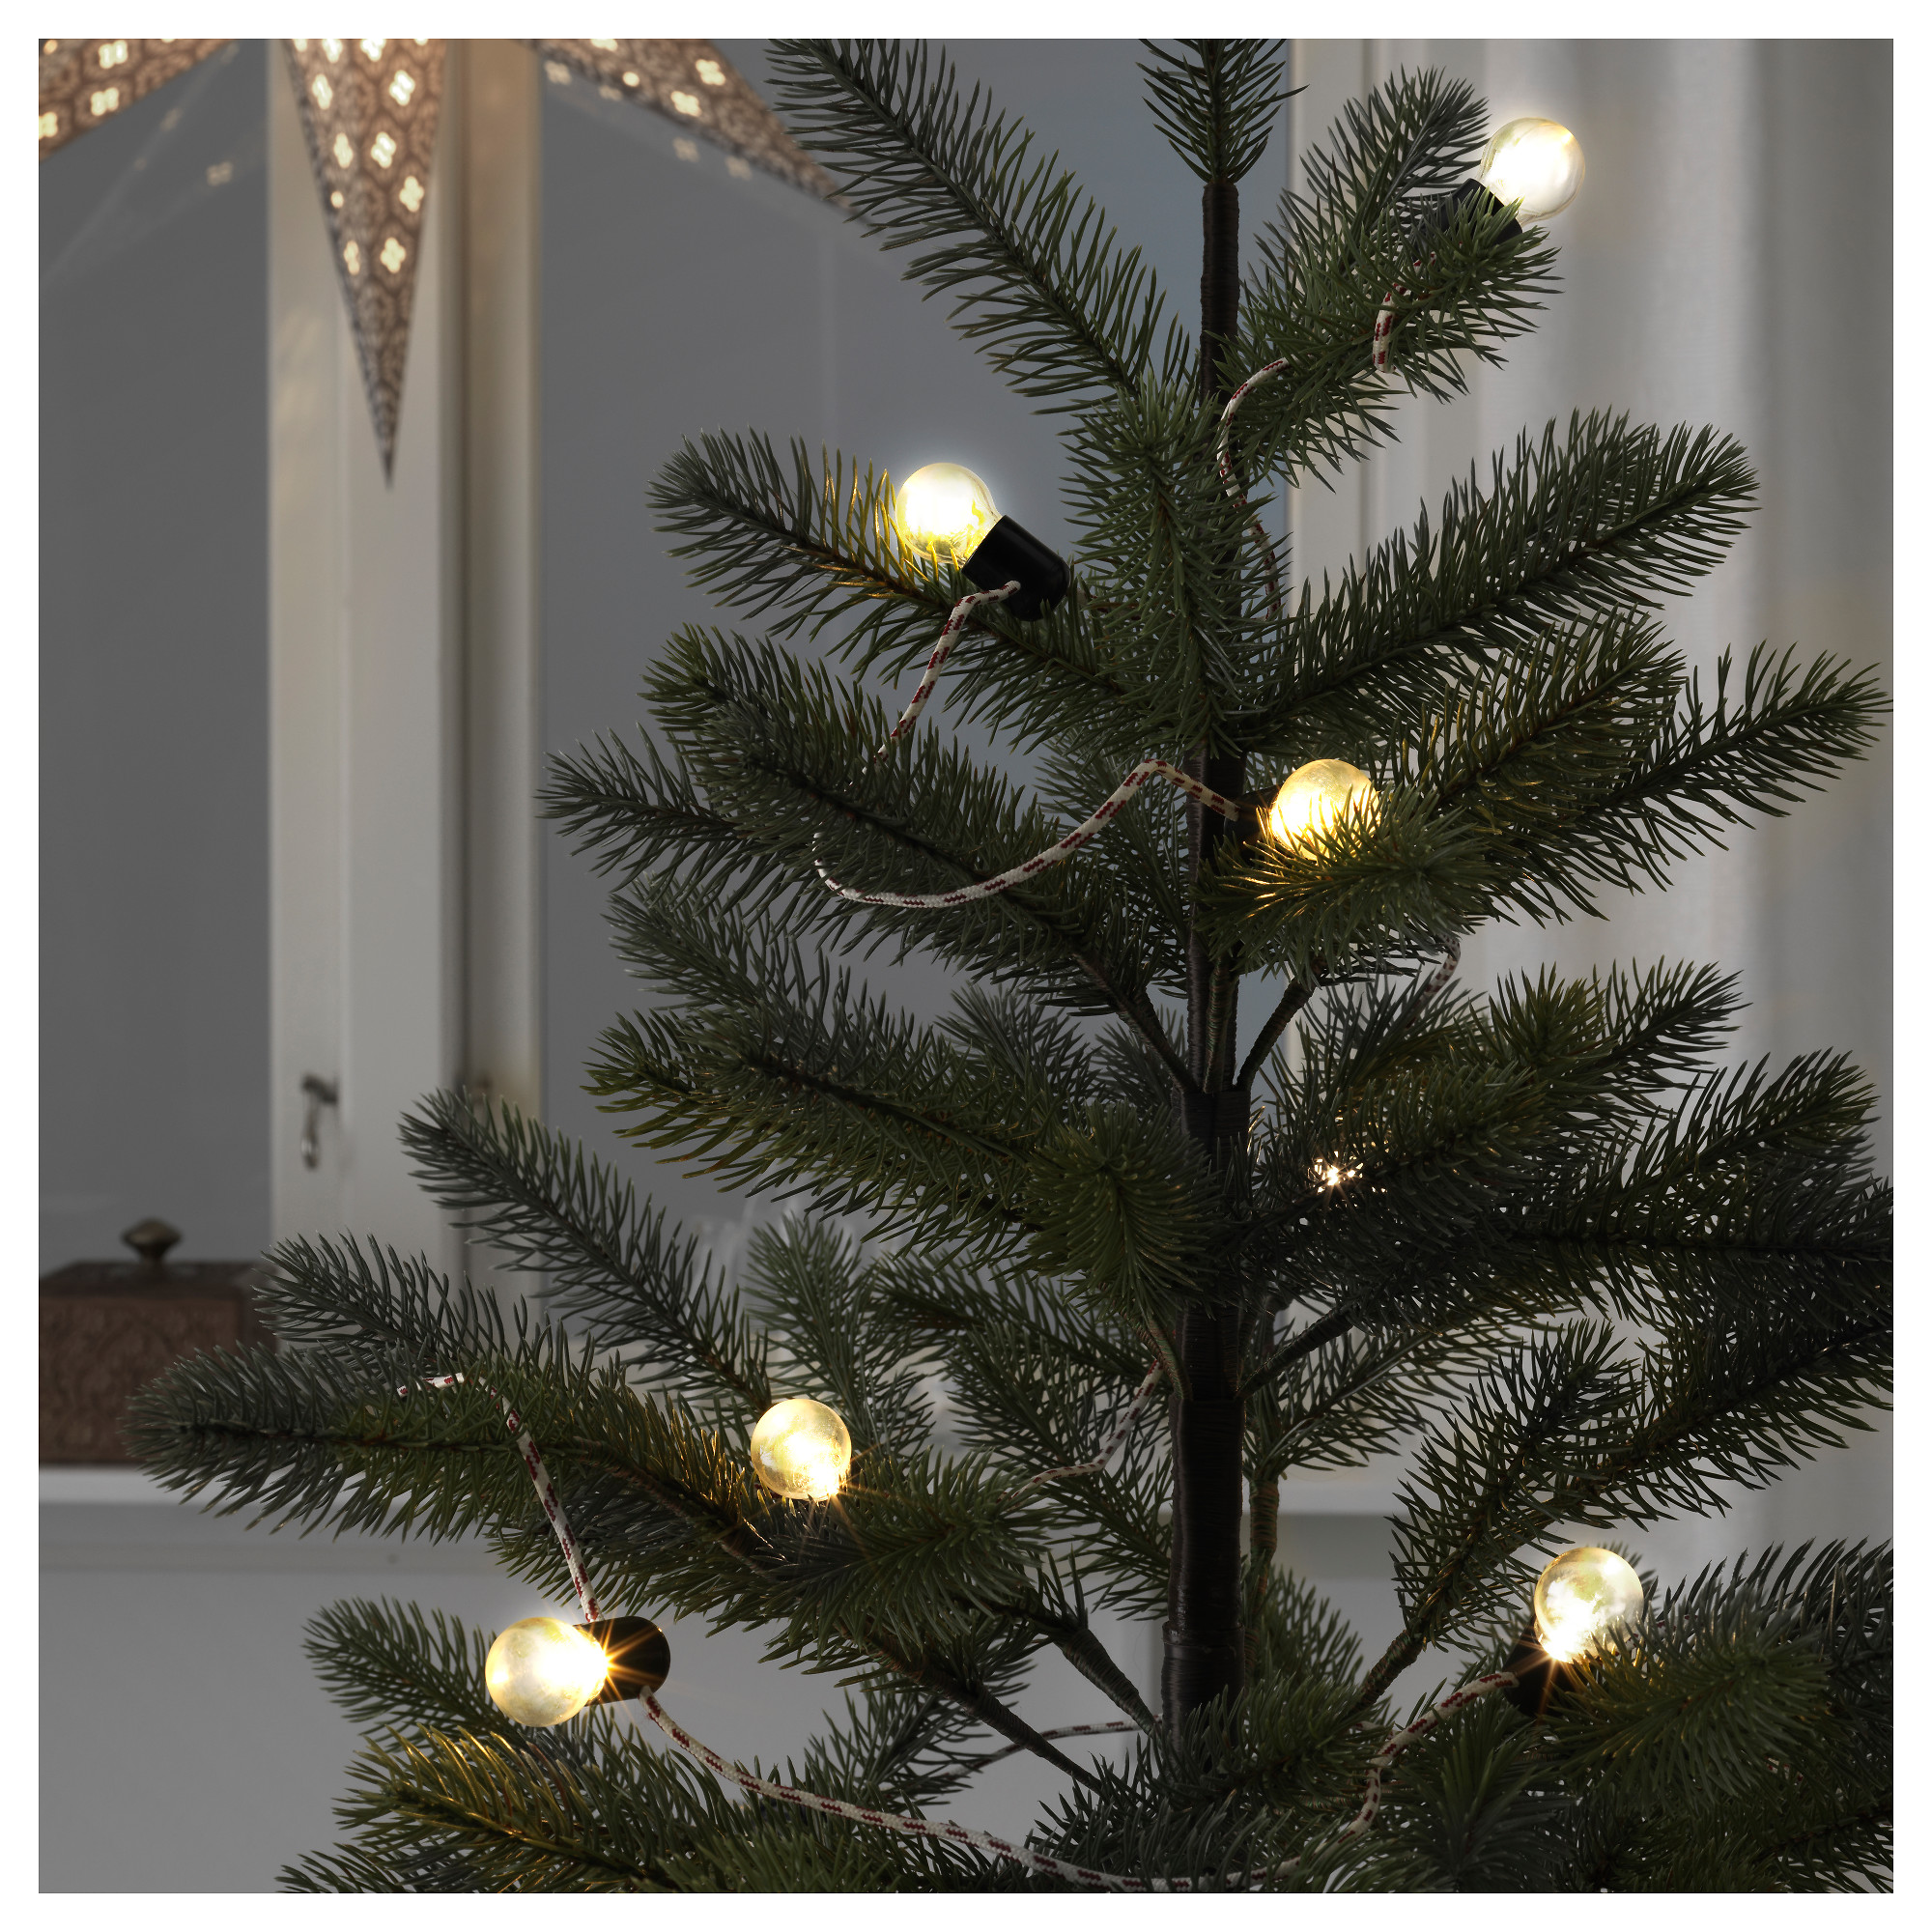 strla led light chain with 12 lights battery operated indoor cord length 4 - Battery Operated White Christmas Lights